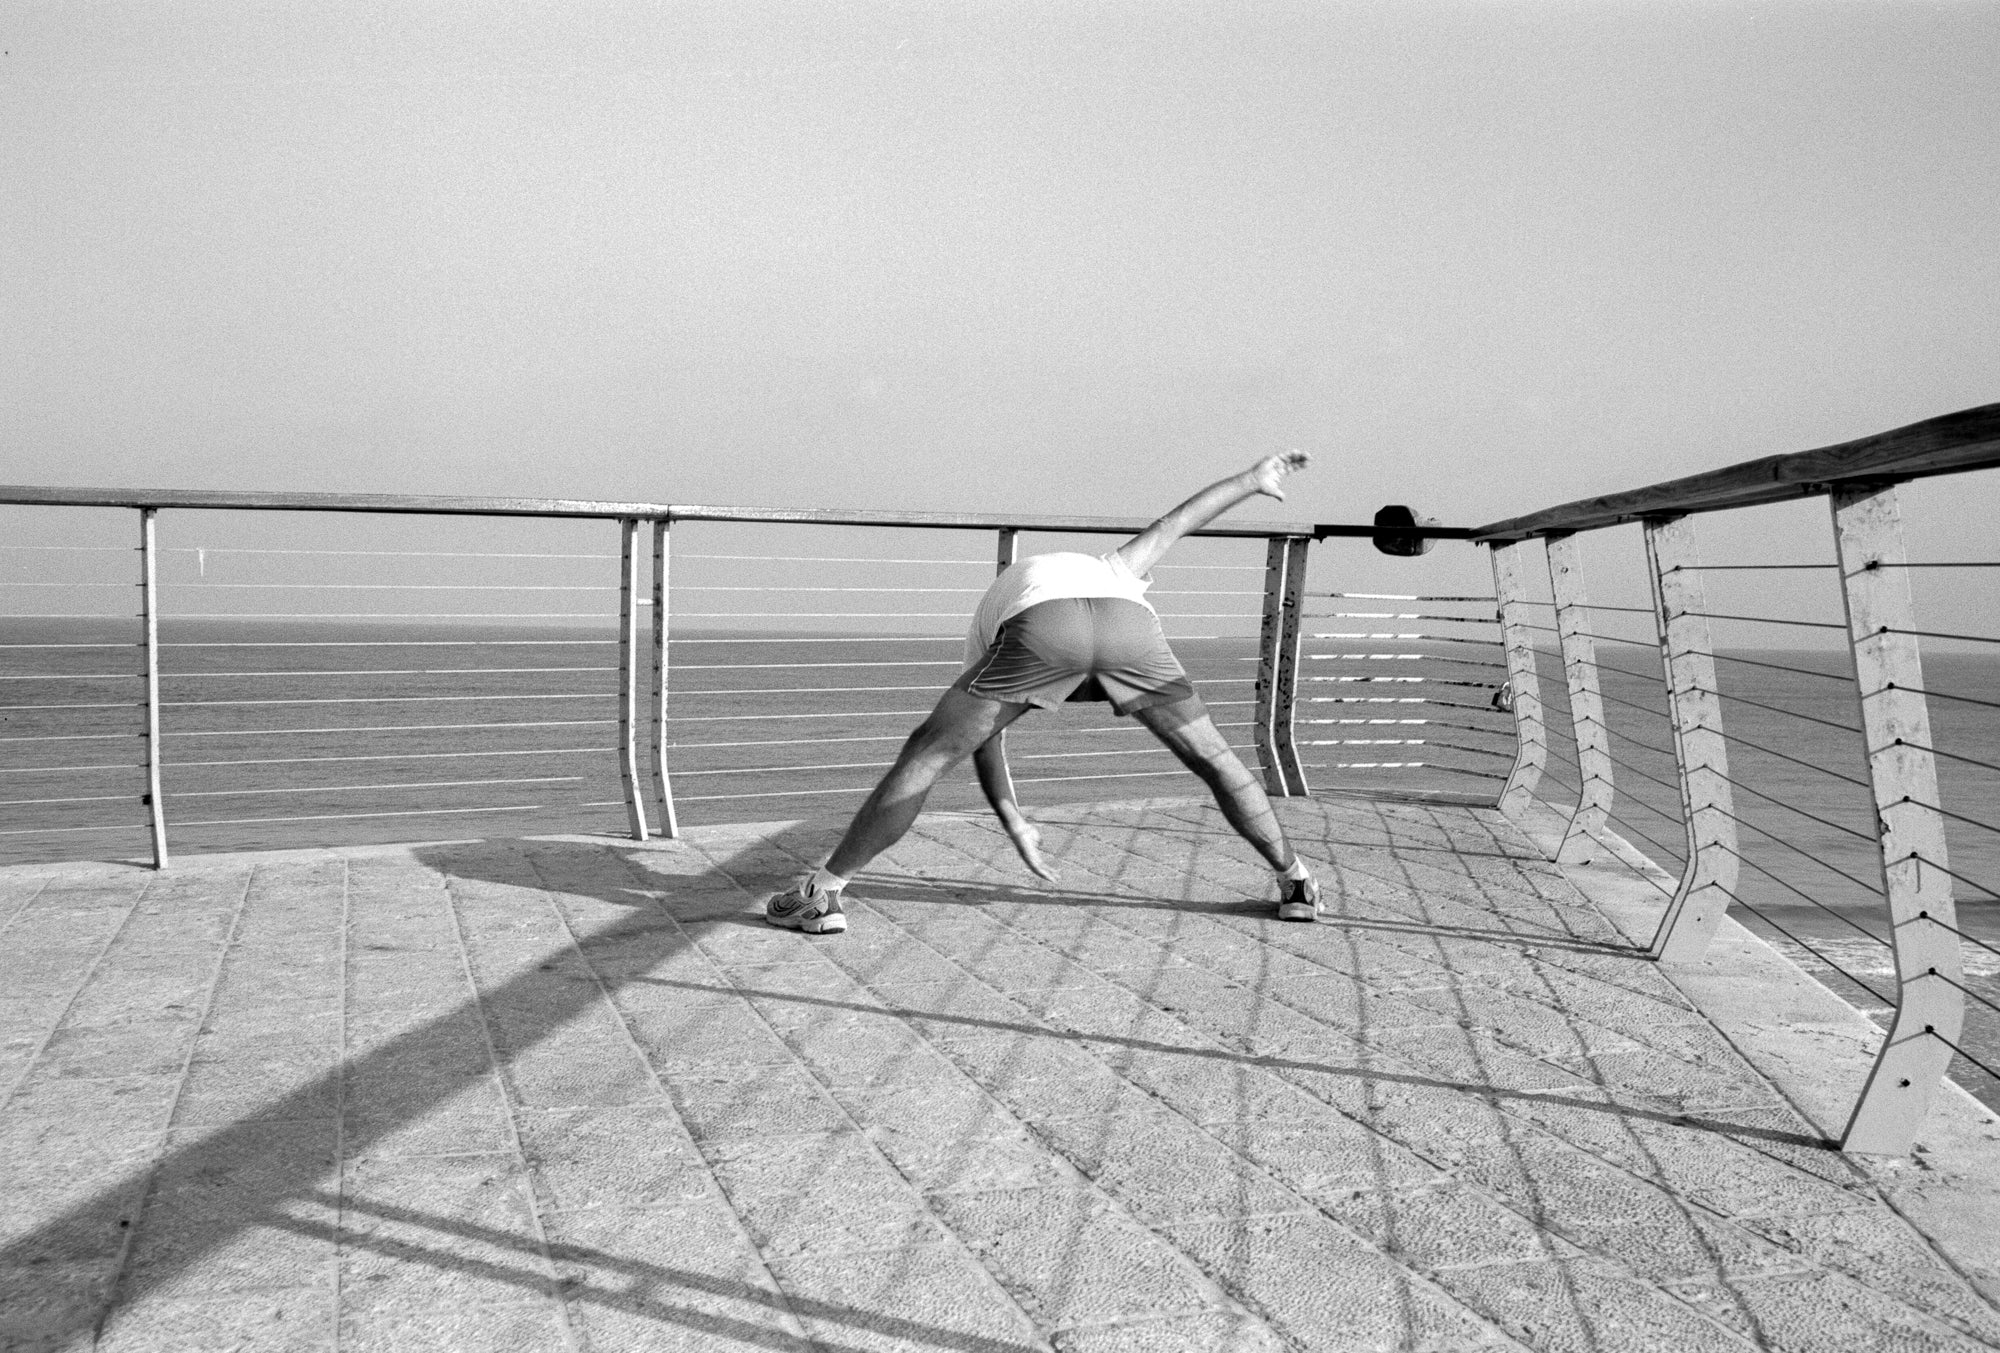 Photo taken on Fuji Acros B&W 35mm film - man doing stretches